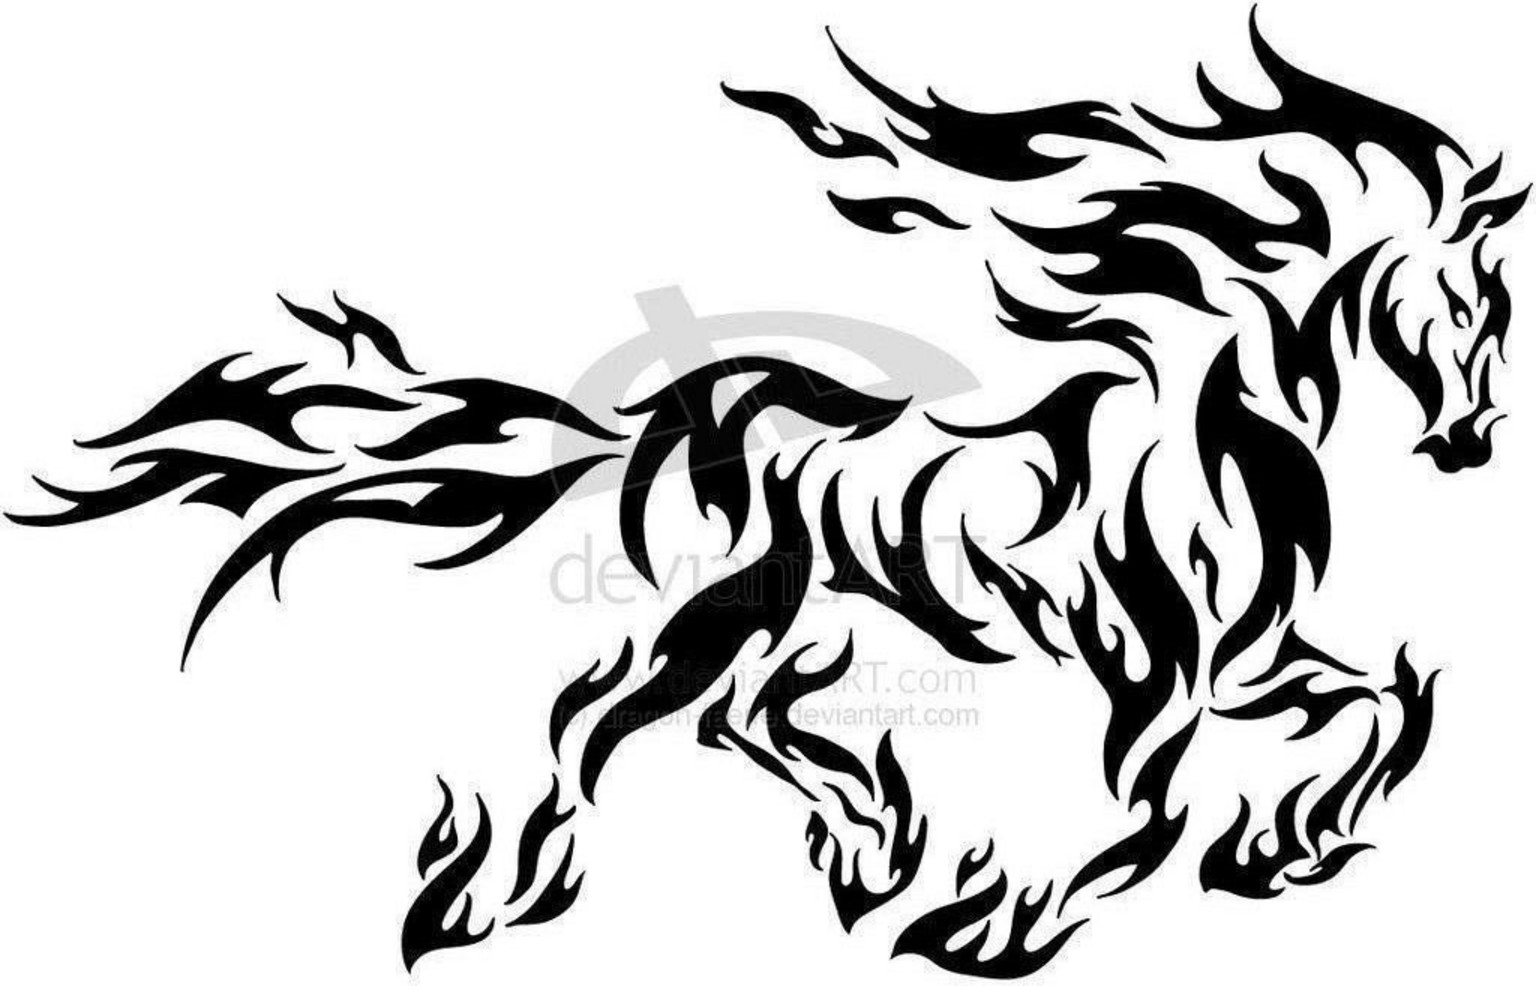 1536x986 Collection Of Horse Tattoo Sketch